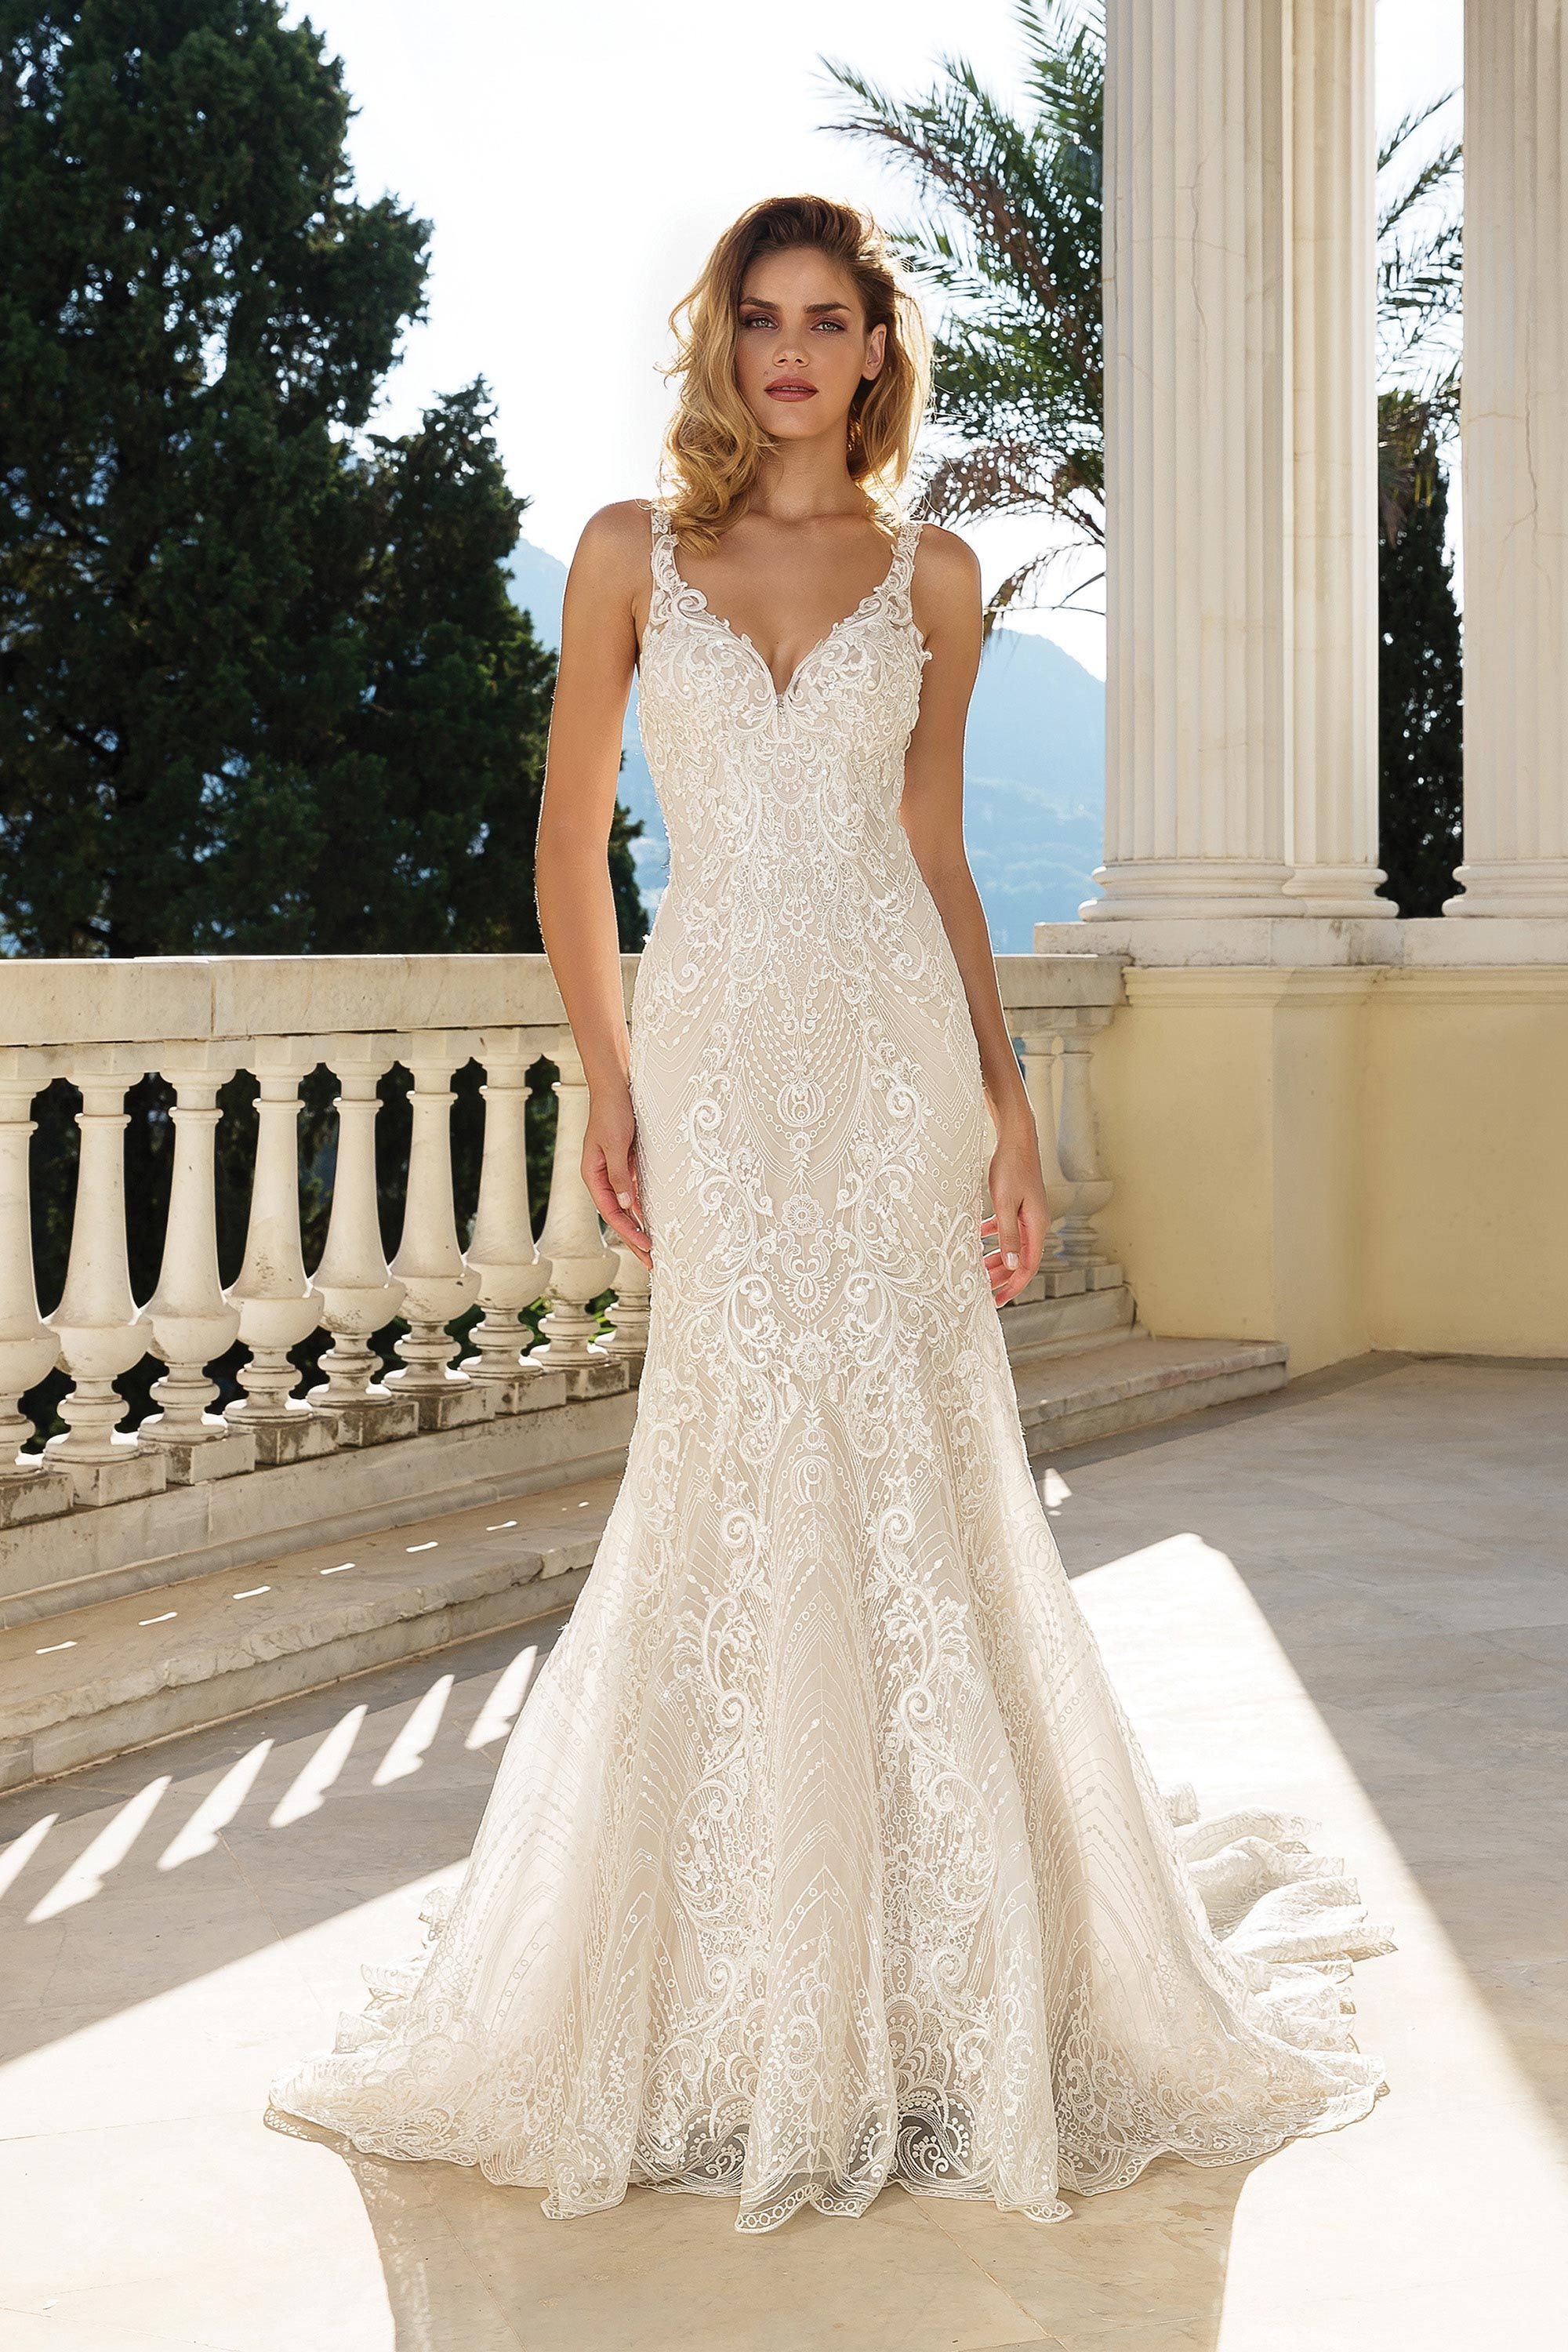 Style 88088 Sequined Embroidered Lace Fit And Flare Gown Justin Alexander In 2020 Justin Alexander Wedding Dress Bridal Elegance Justin Alexander Bridal